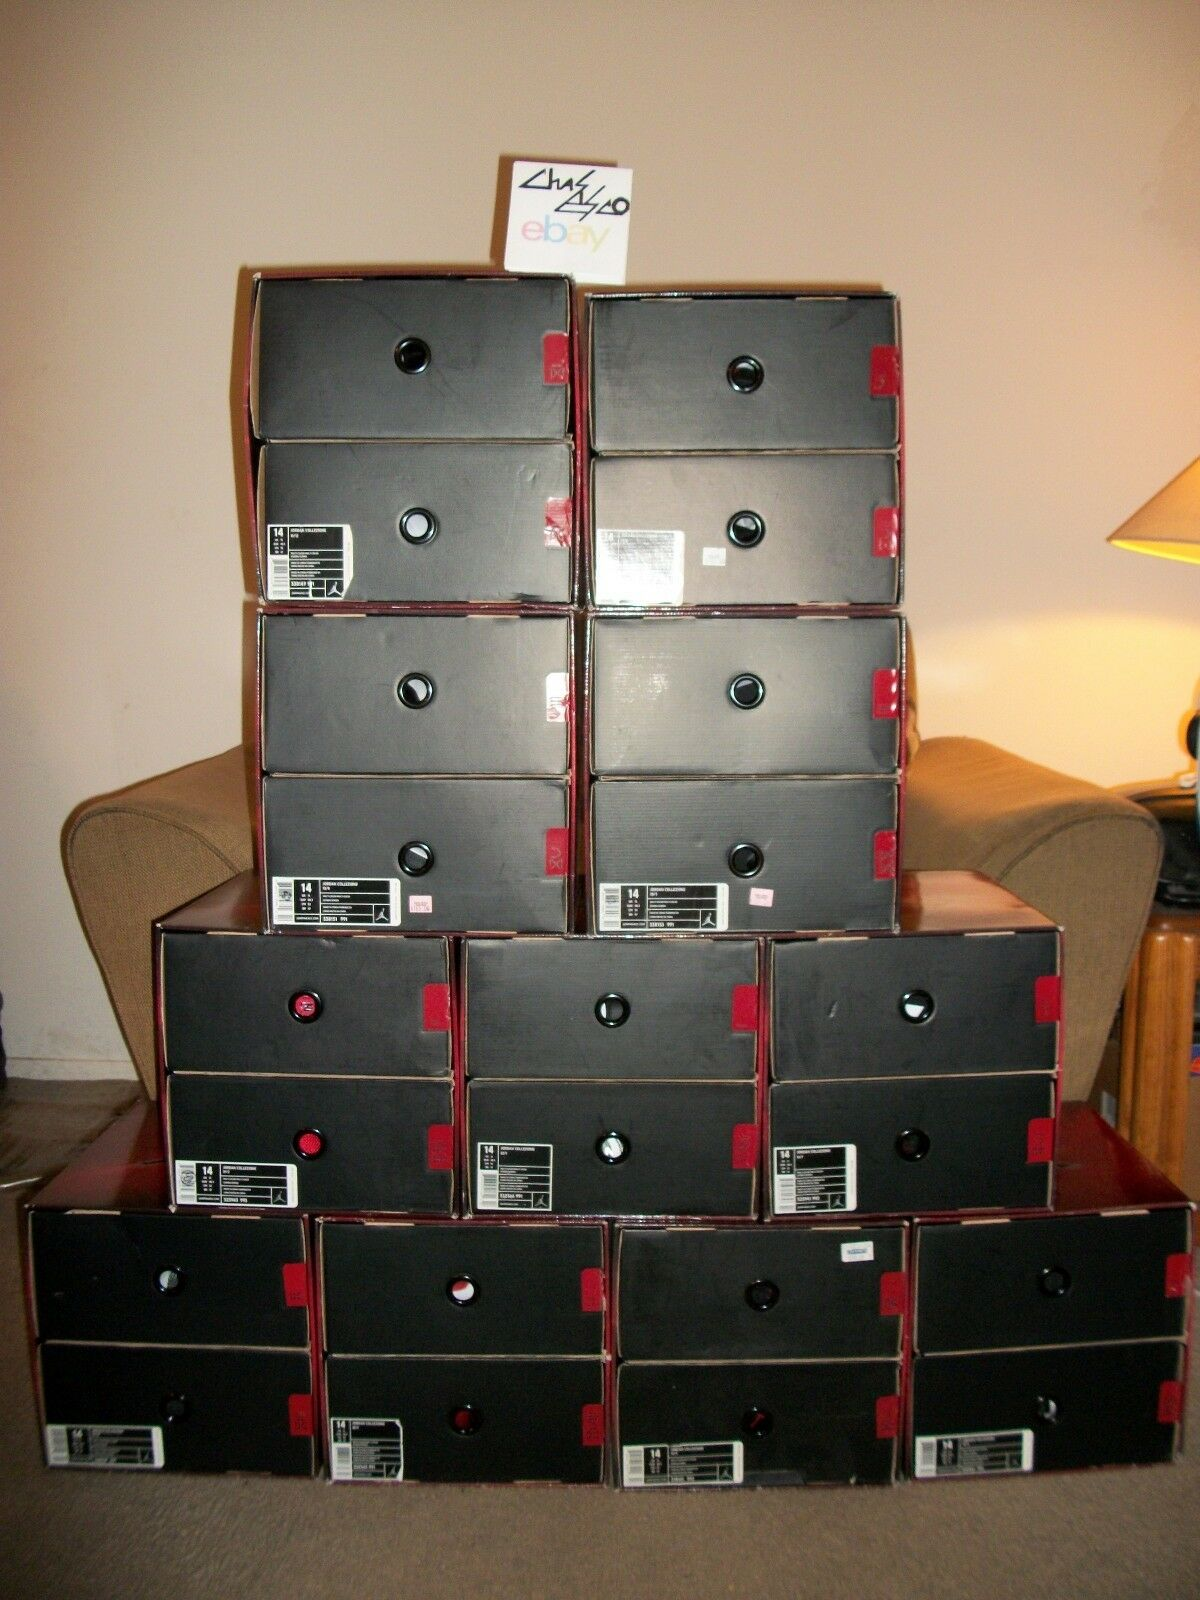 Nike Air Jordan Collezione 2008 Countdown Complete Pack Complete Countdown Set Size 14 New In Box ! bf8220